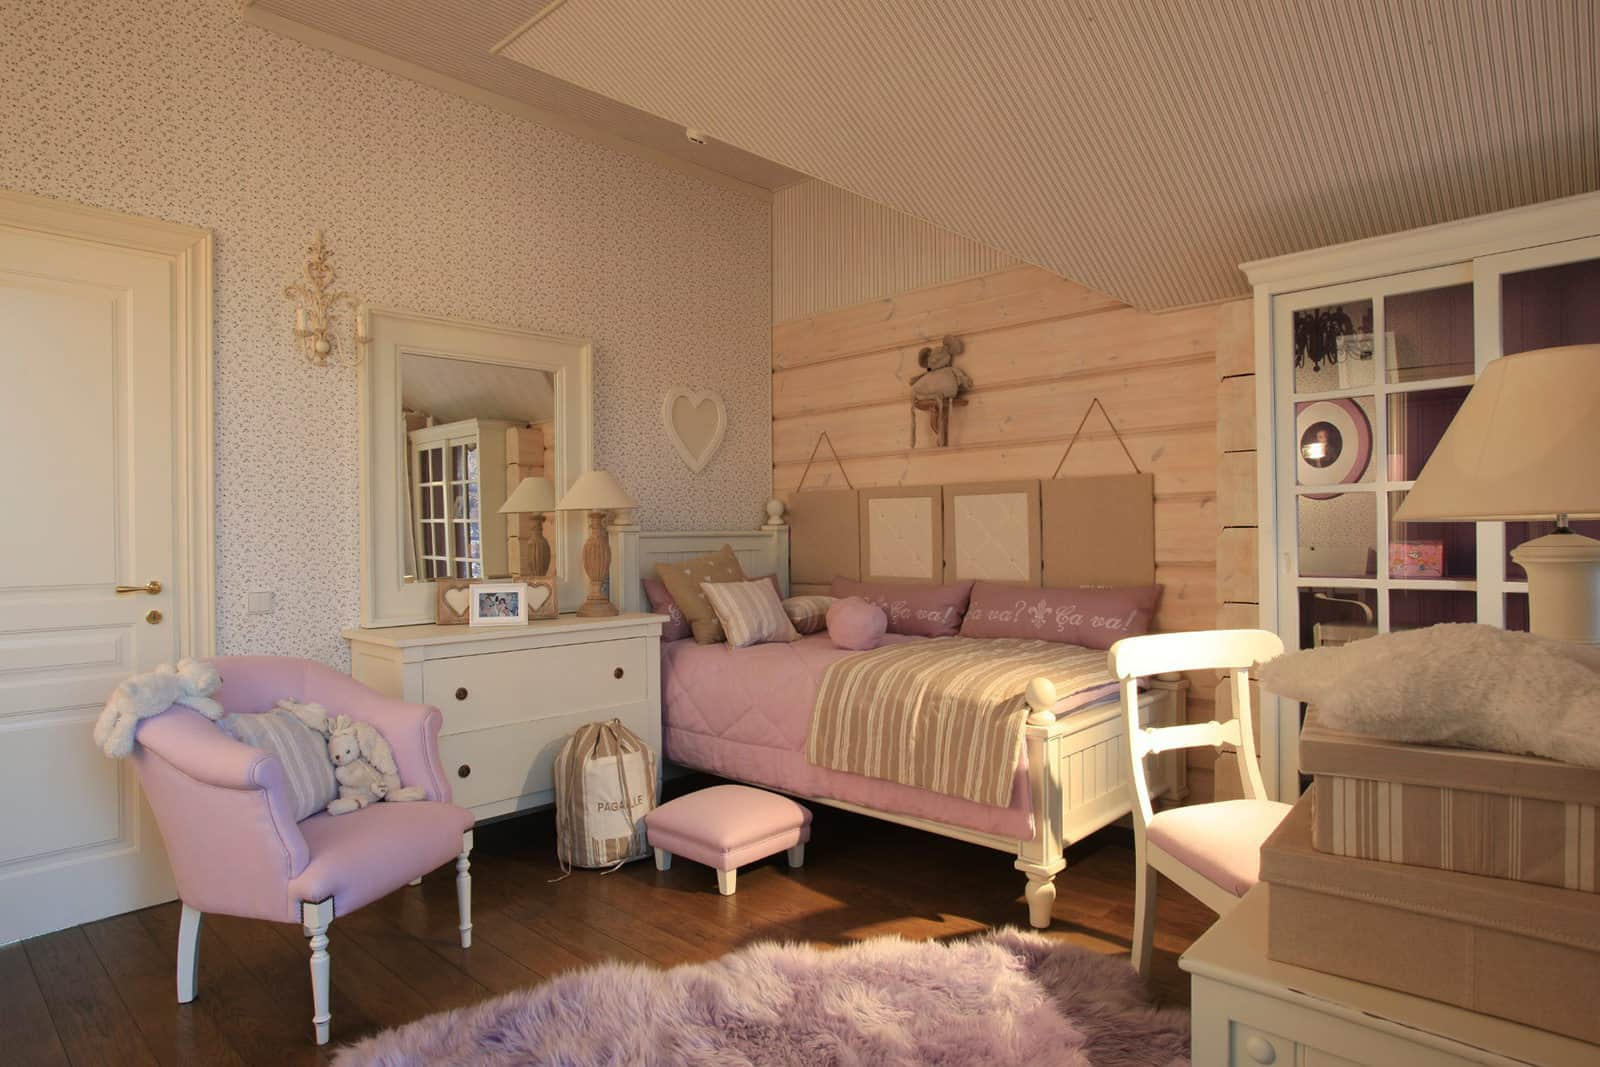 French Country Decor Kids Room Ideas French Country Decor House Interior